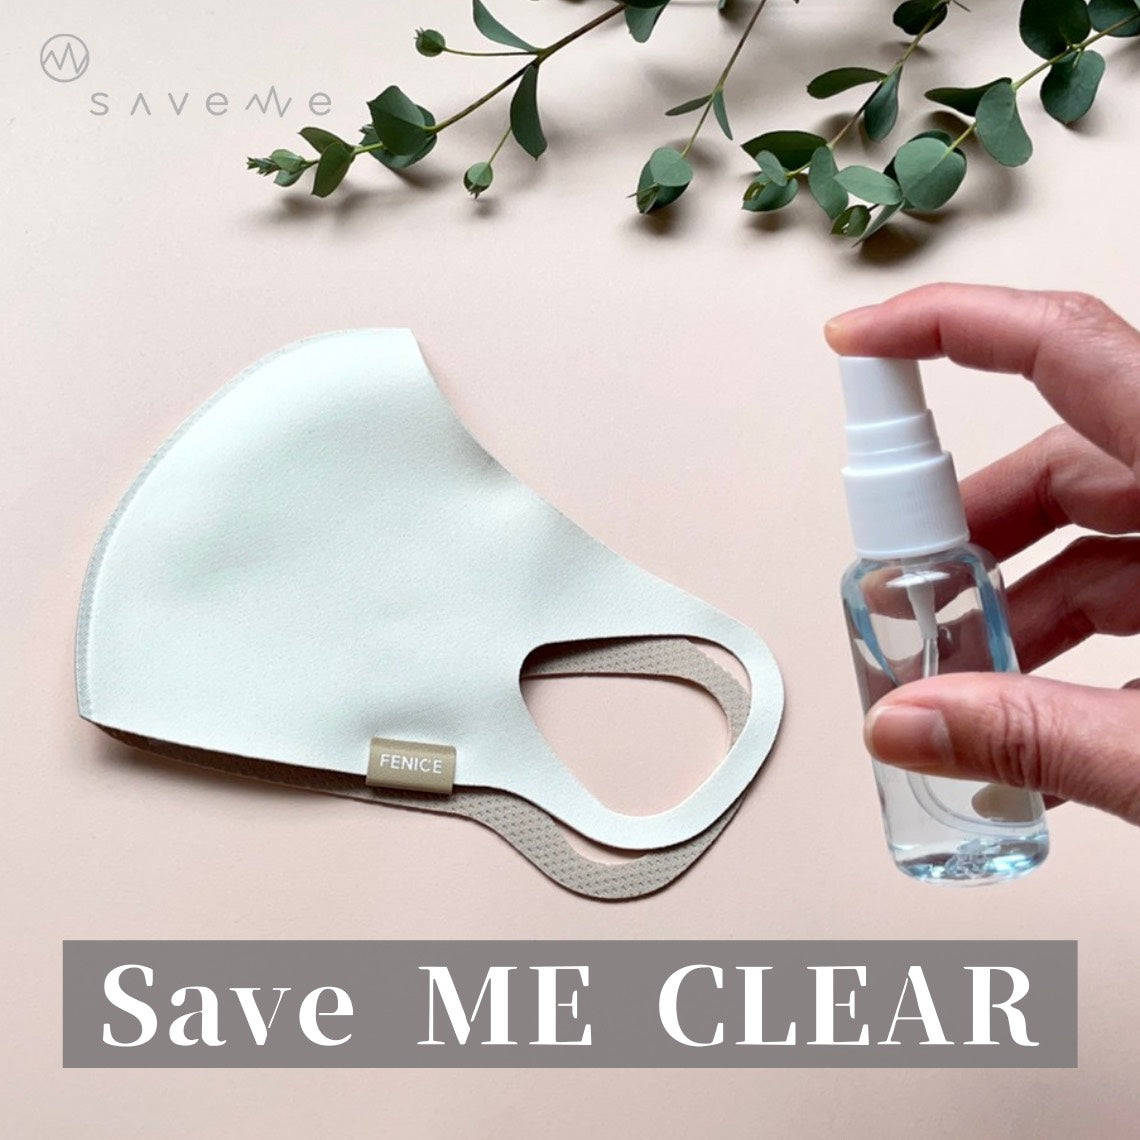 Save ME CLEAR 除菌ミスト 10ml